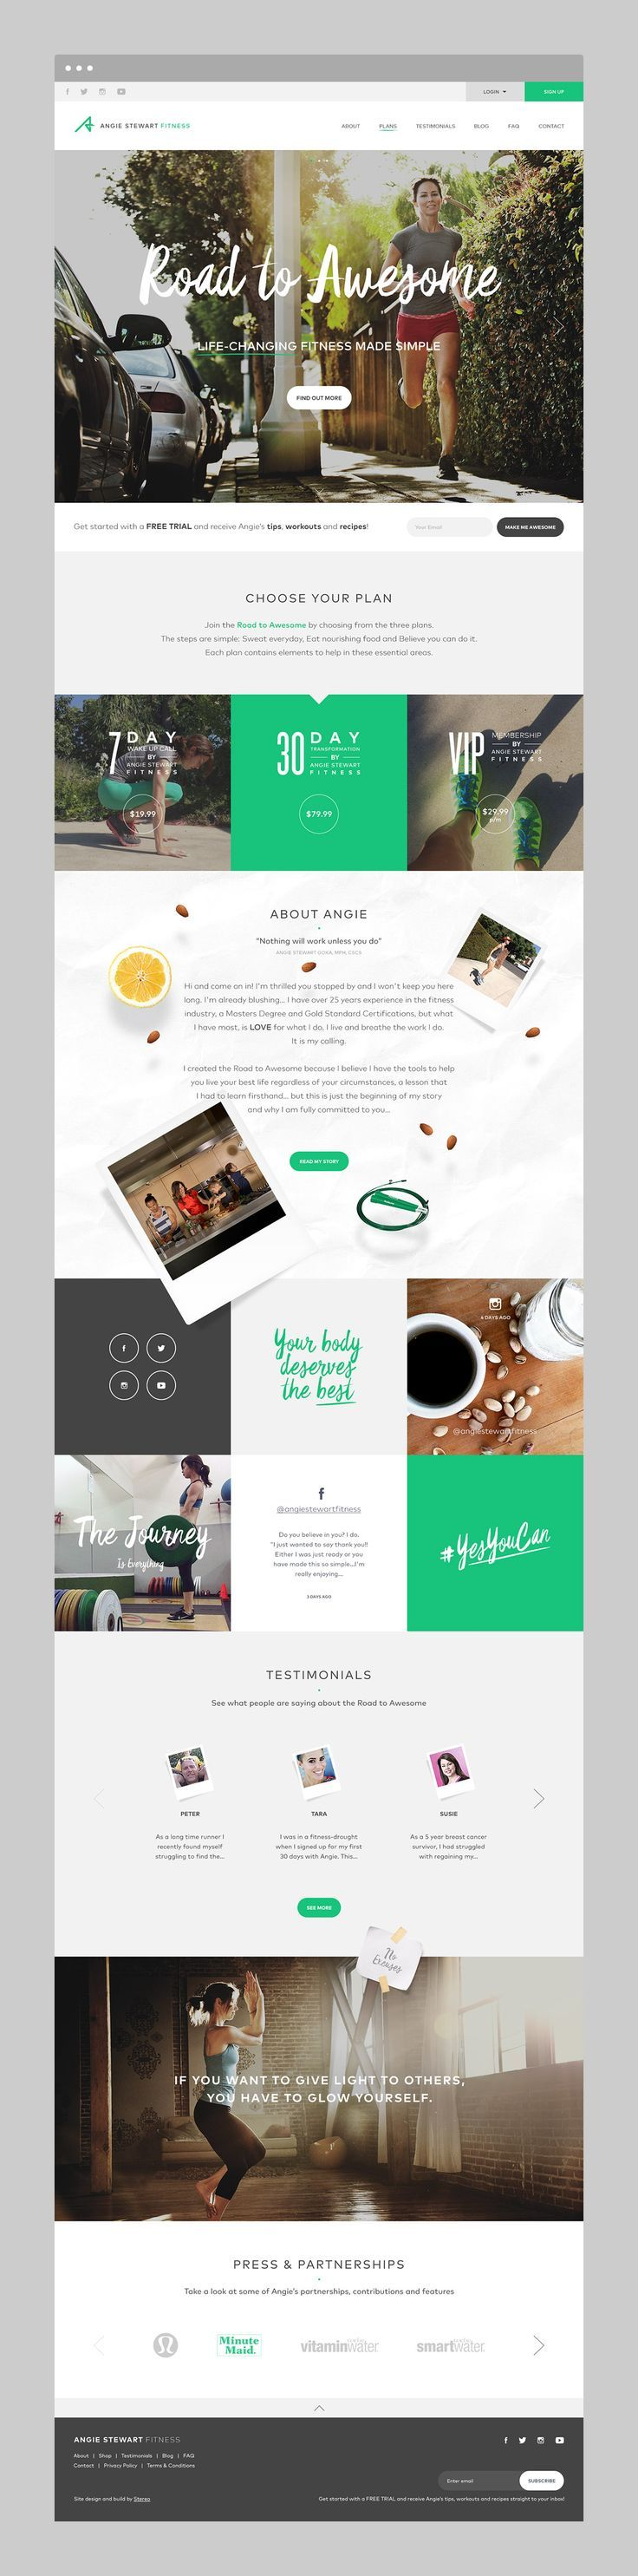 Road to awesome website design from StudioMH for Angie Stewart Fitness